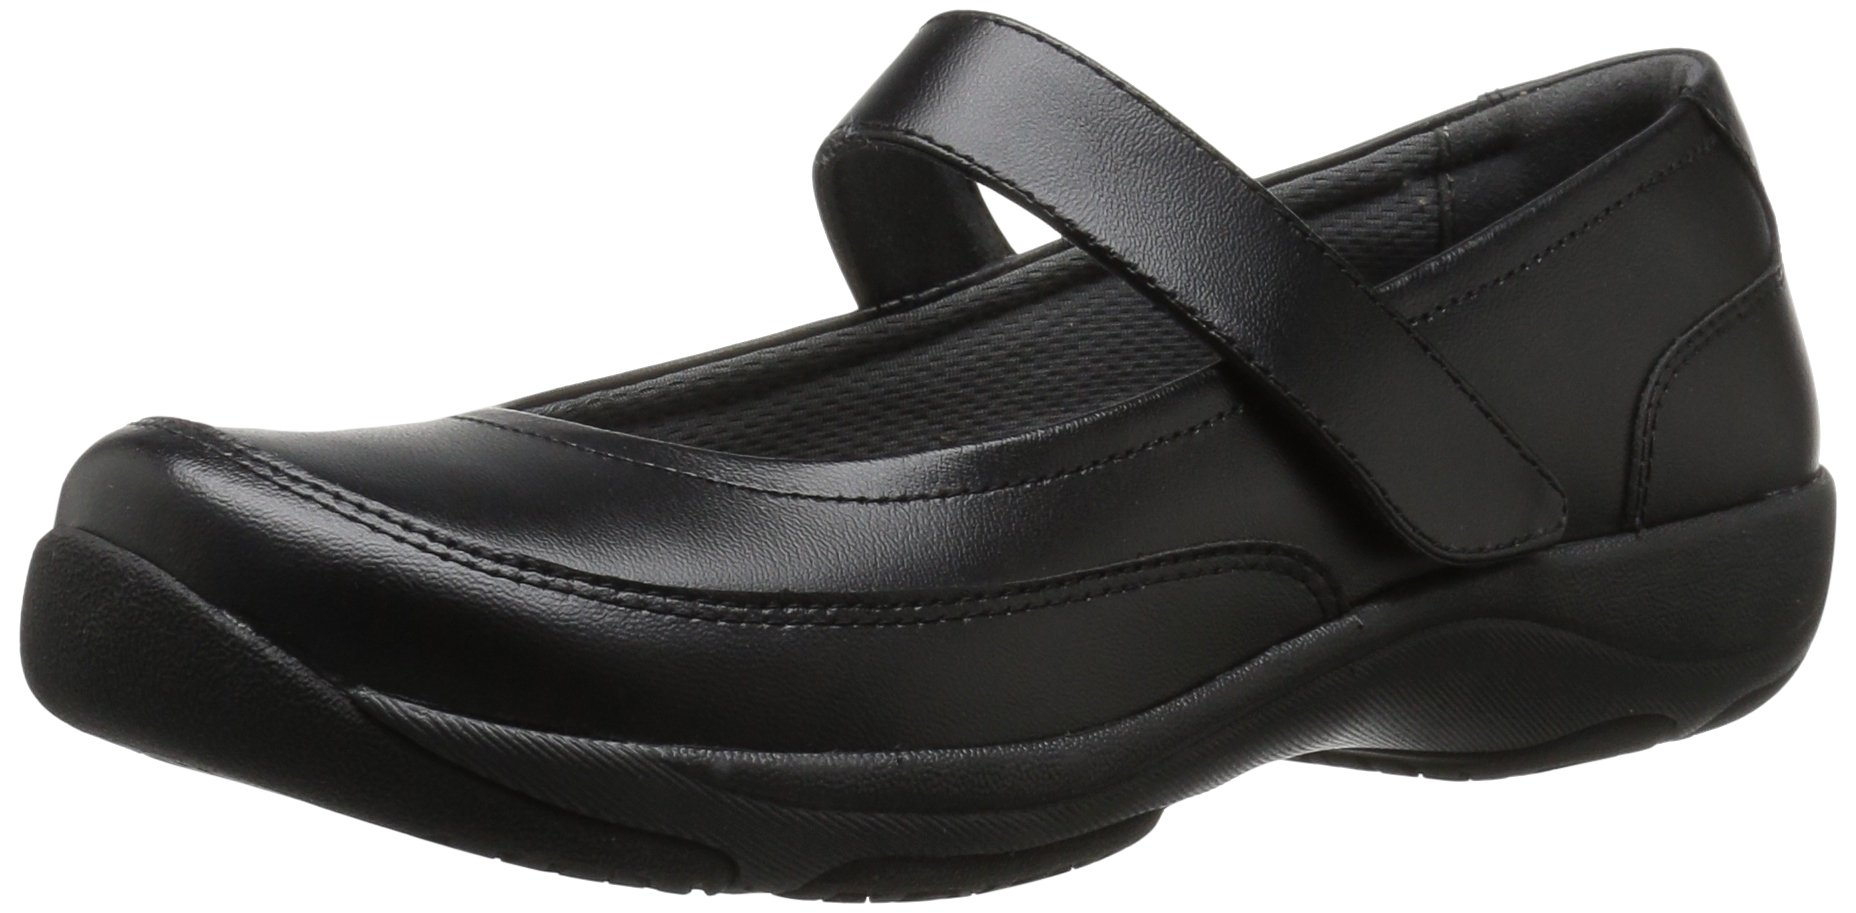 Dansko Women's Edith Mary Jane Flat, Black Leather, 37 EU/6.5-7 M US